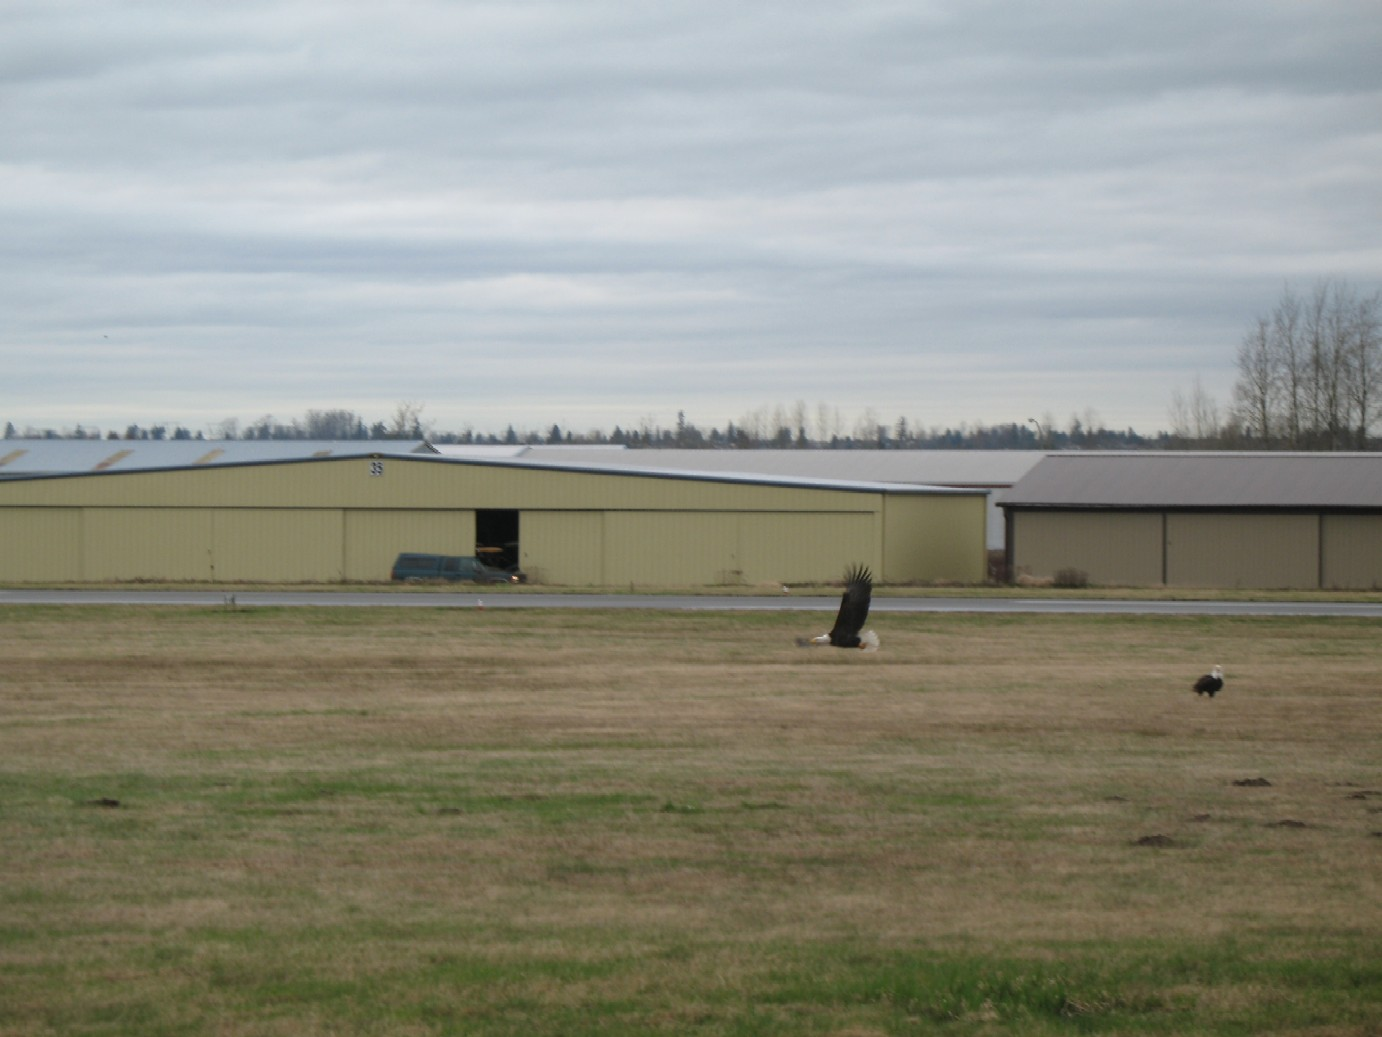 Eagles soar at Langley Airport just off the Langley Flying School ramp.